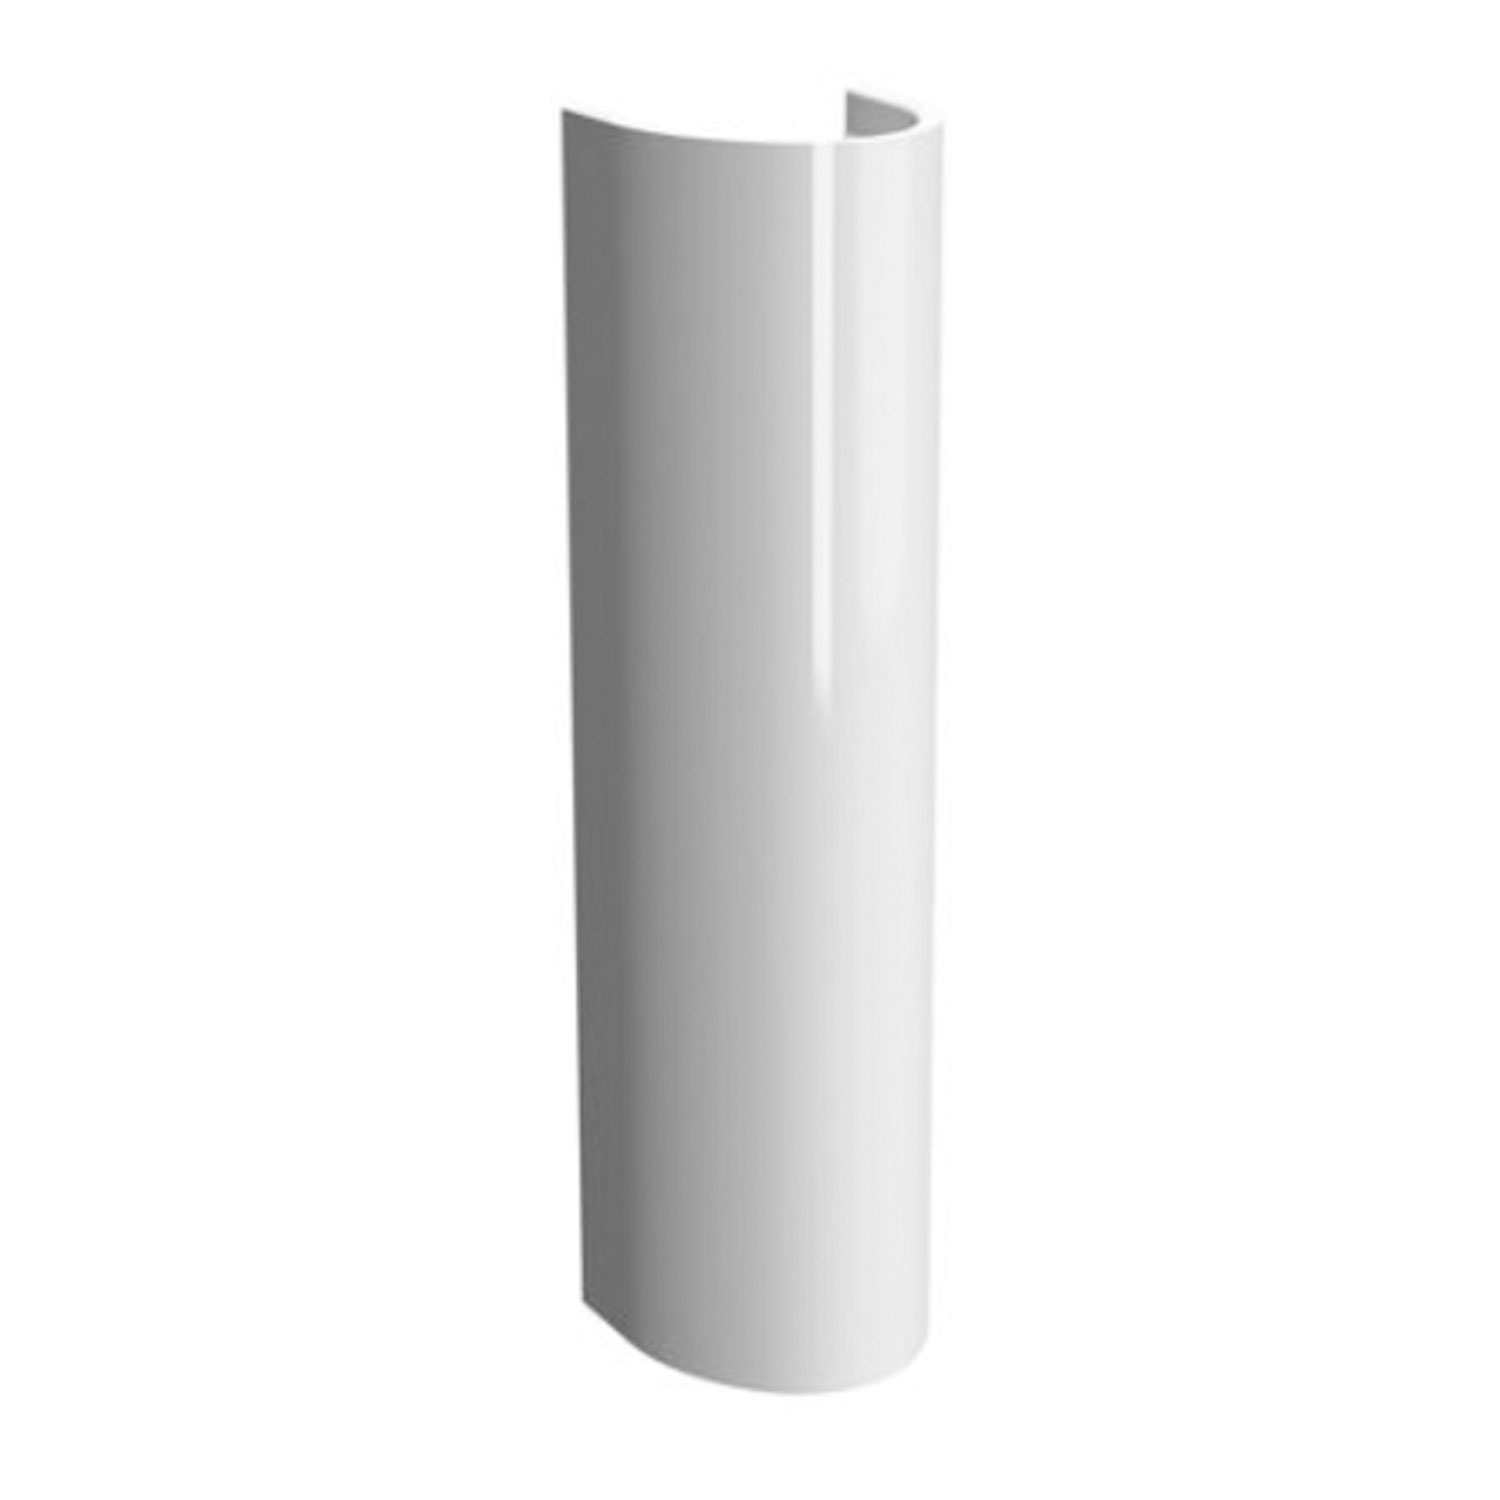 Vitra S50 Round Basin & Full Pedestal 500mm Wide 1 Tap Hole-0